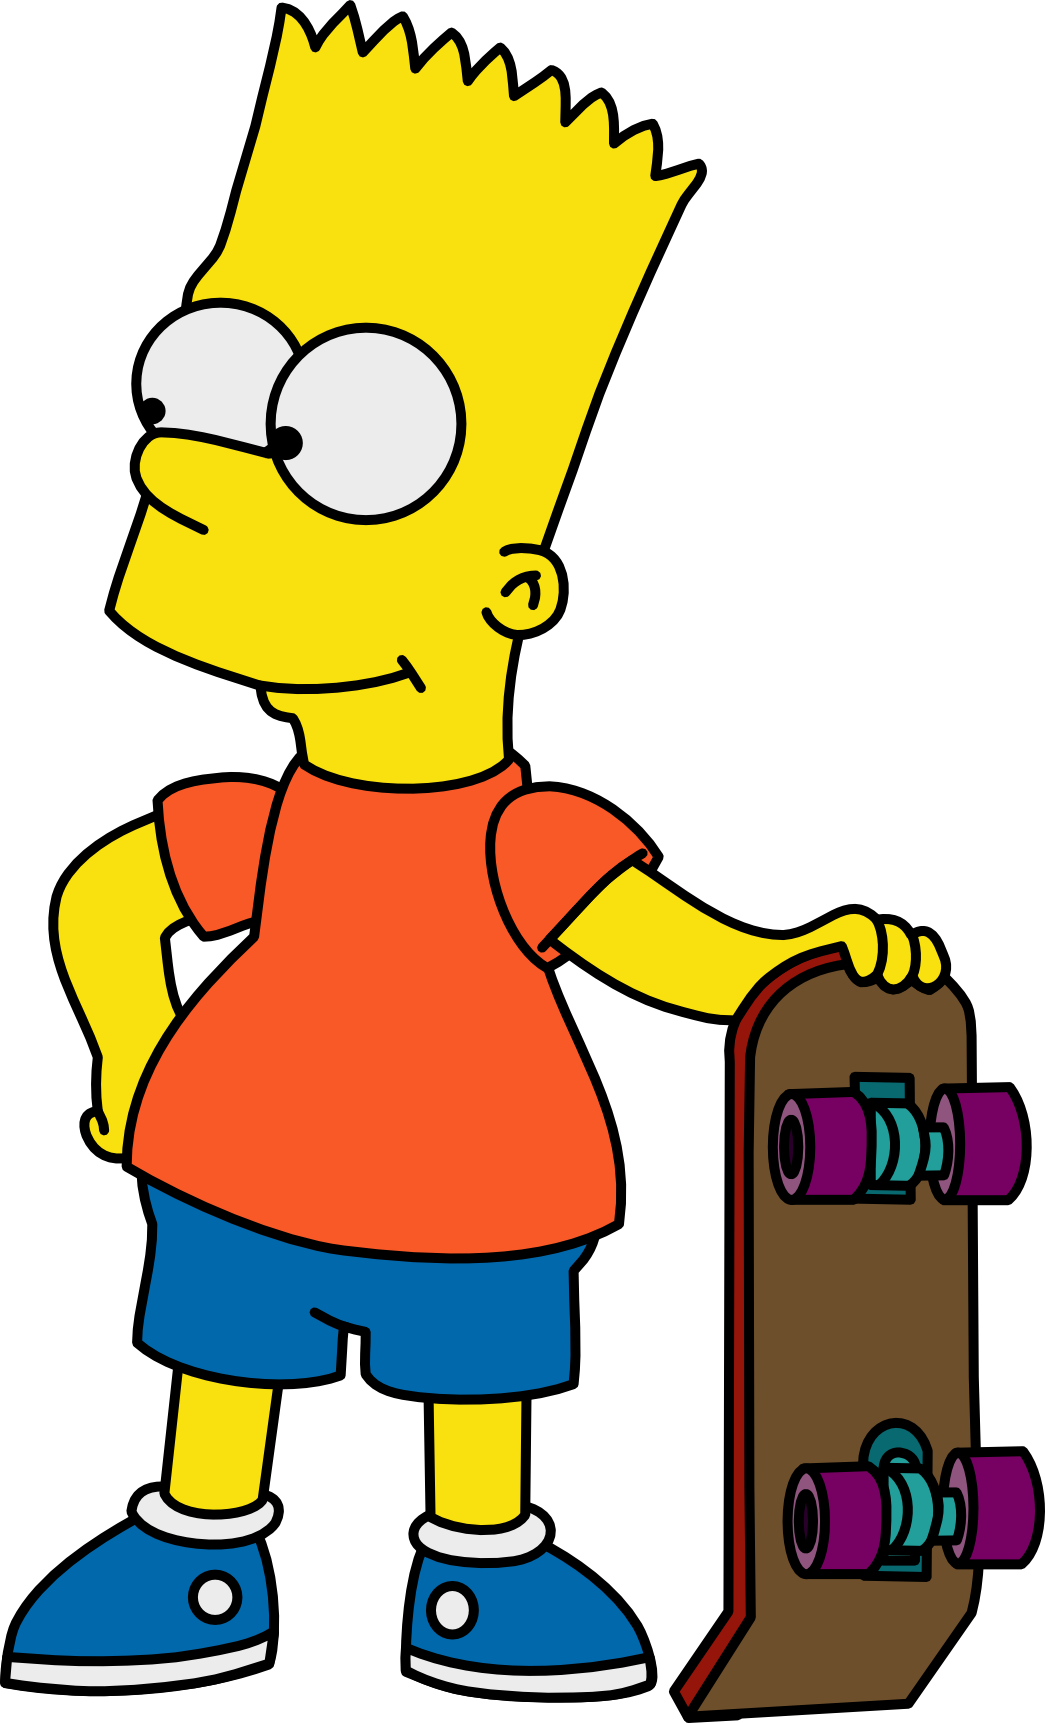 Simpsons drawing production